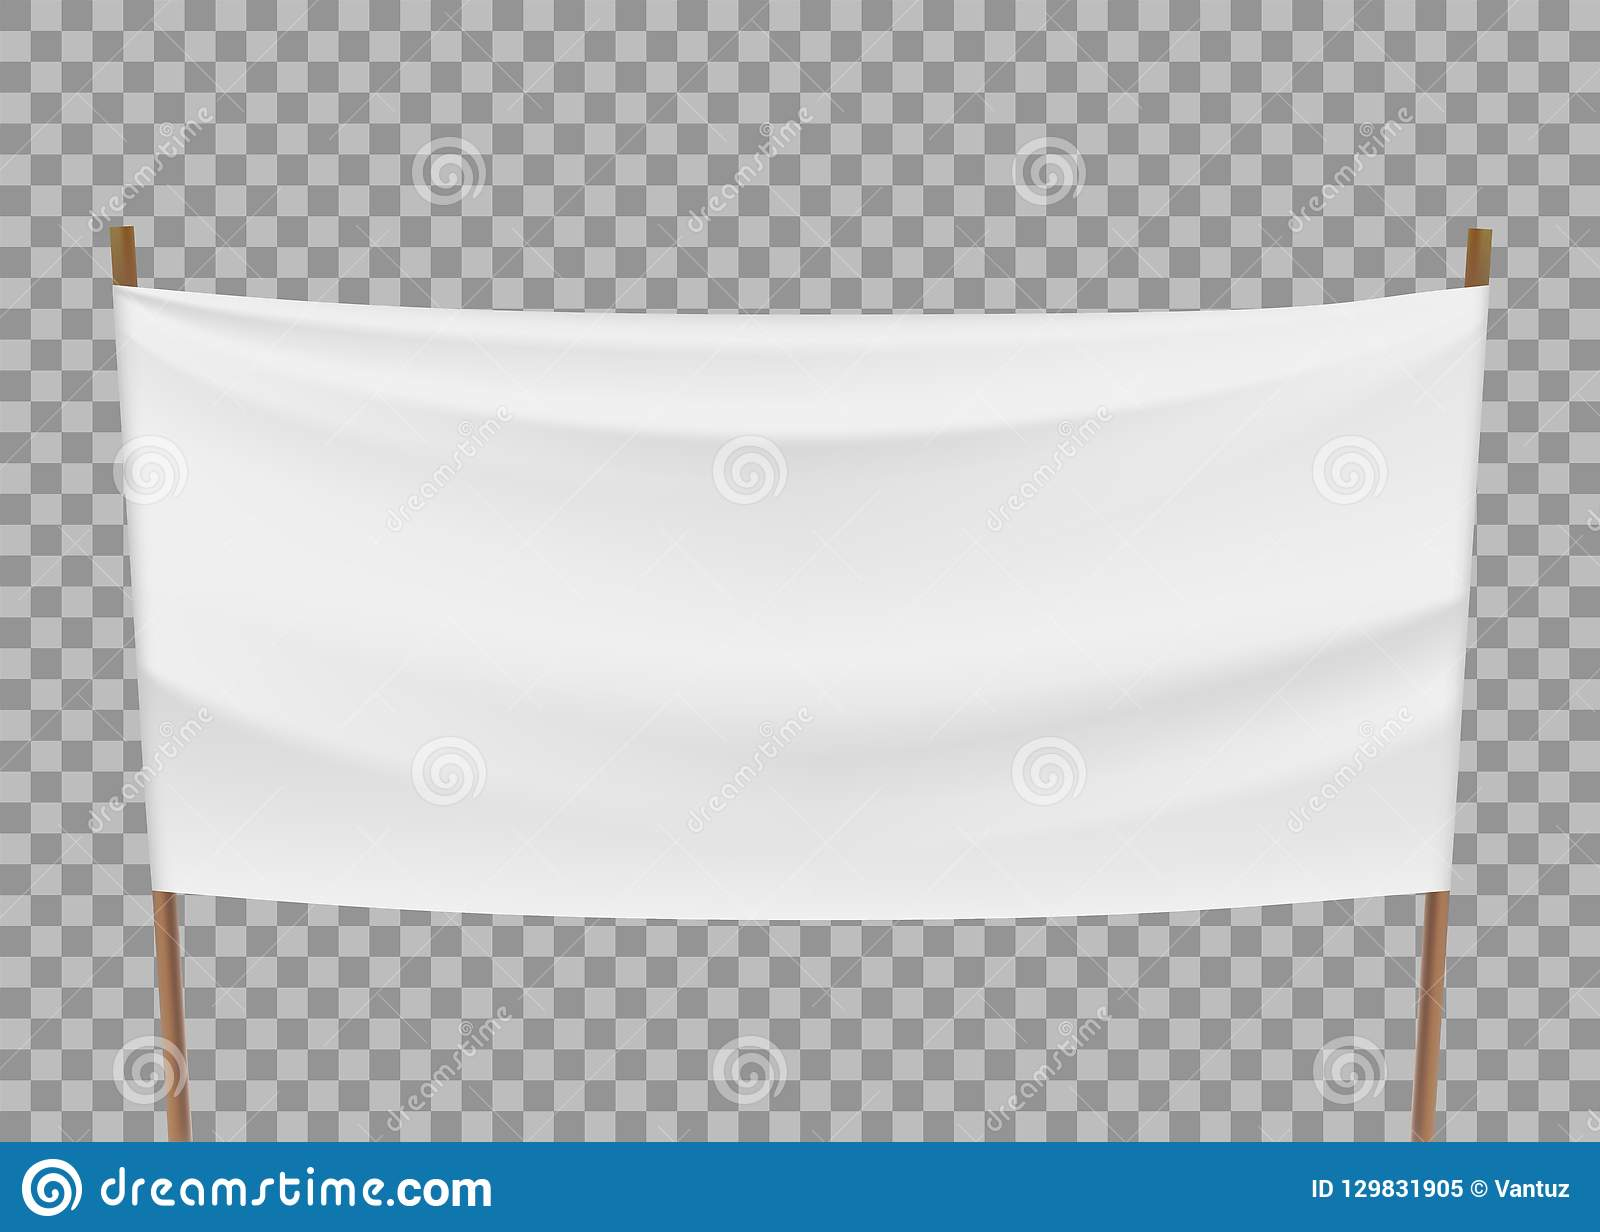 Blank Template Of White Banner Isolated On A Transparent